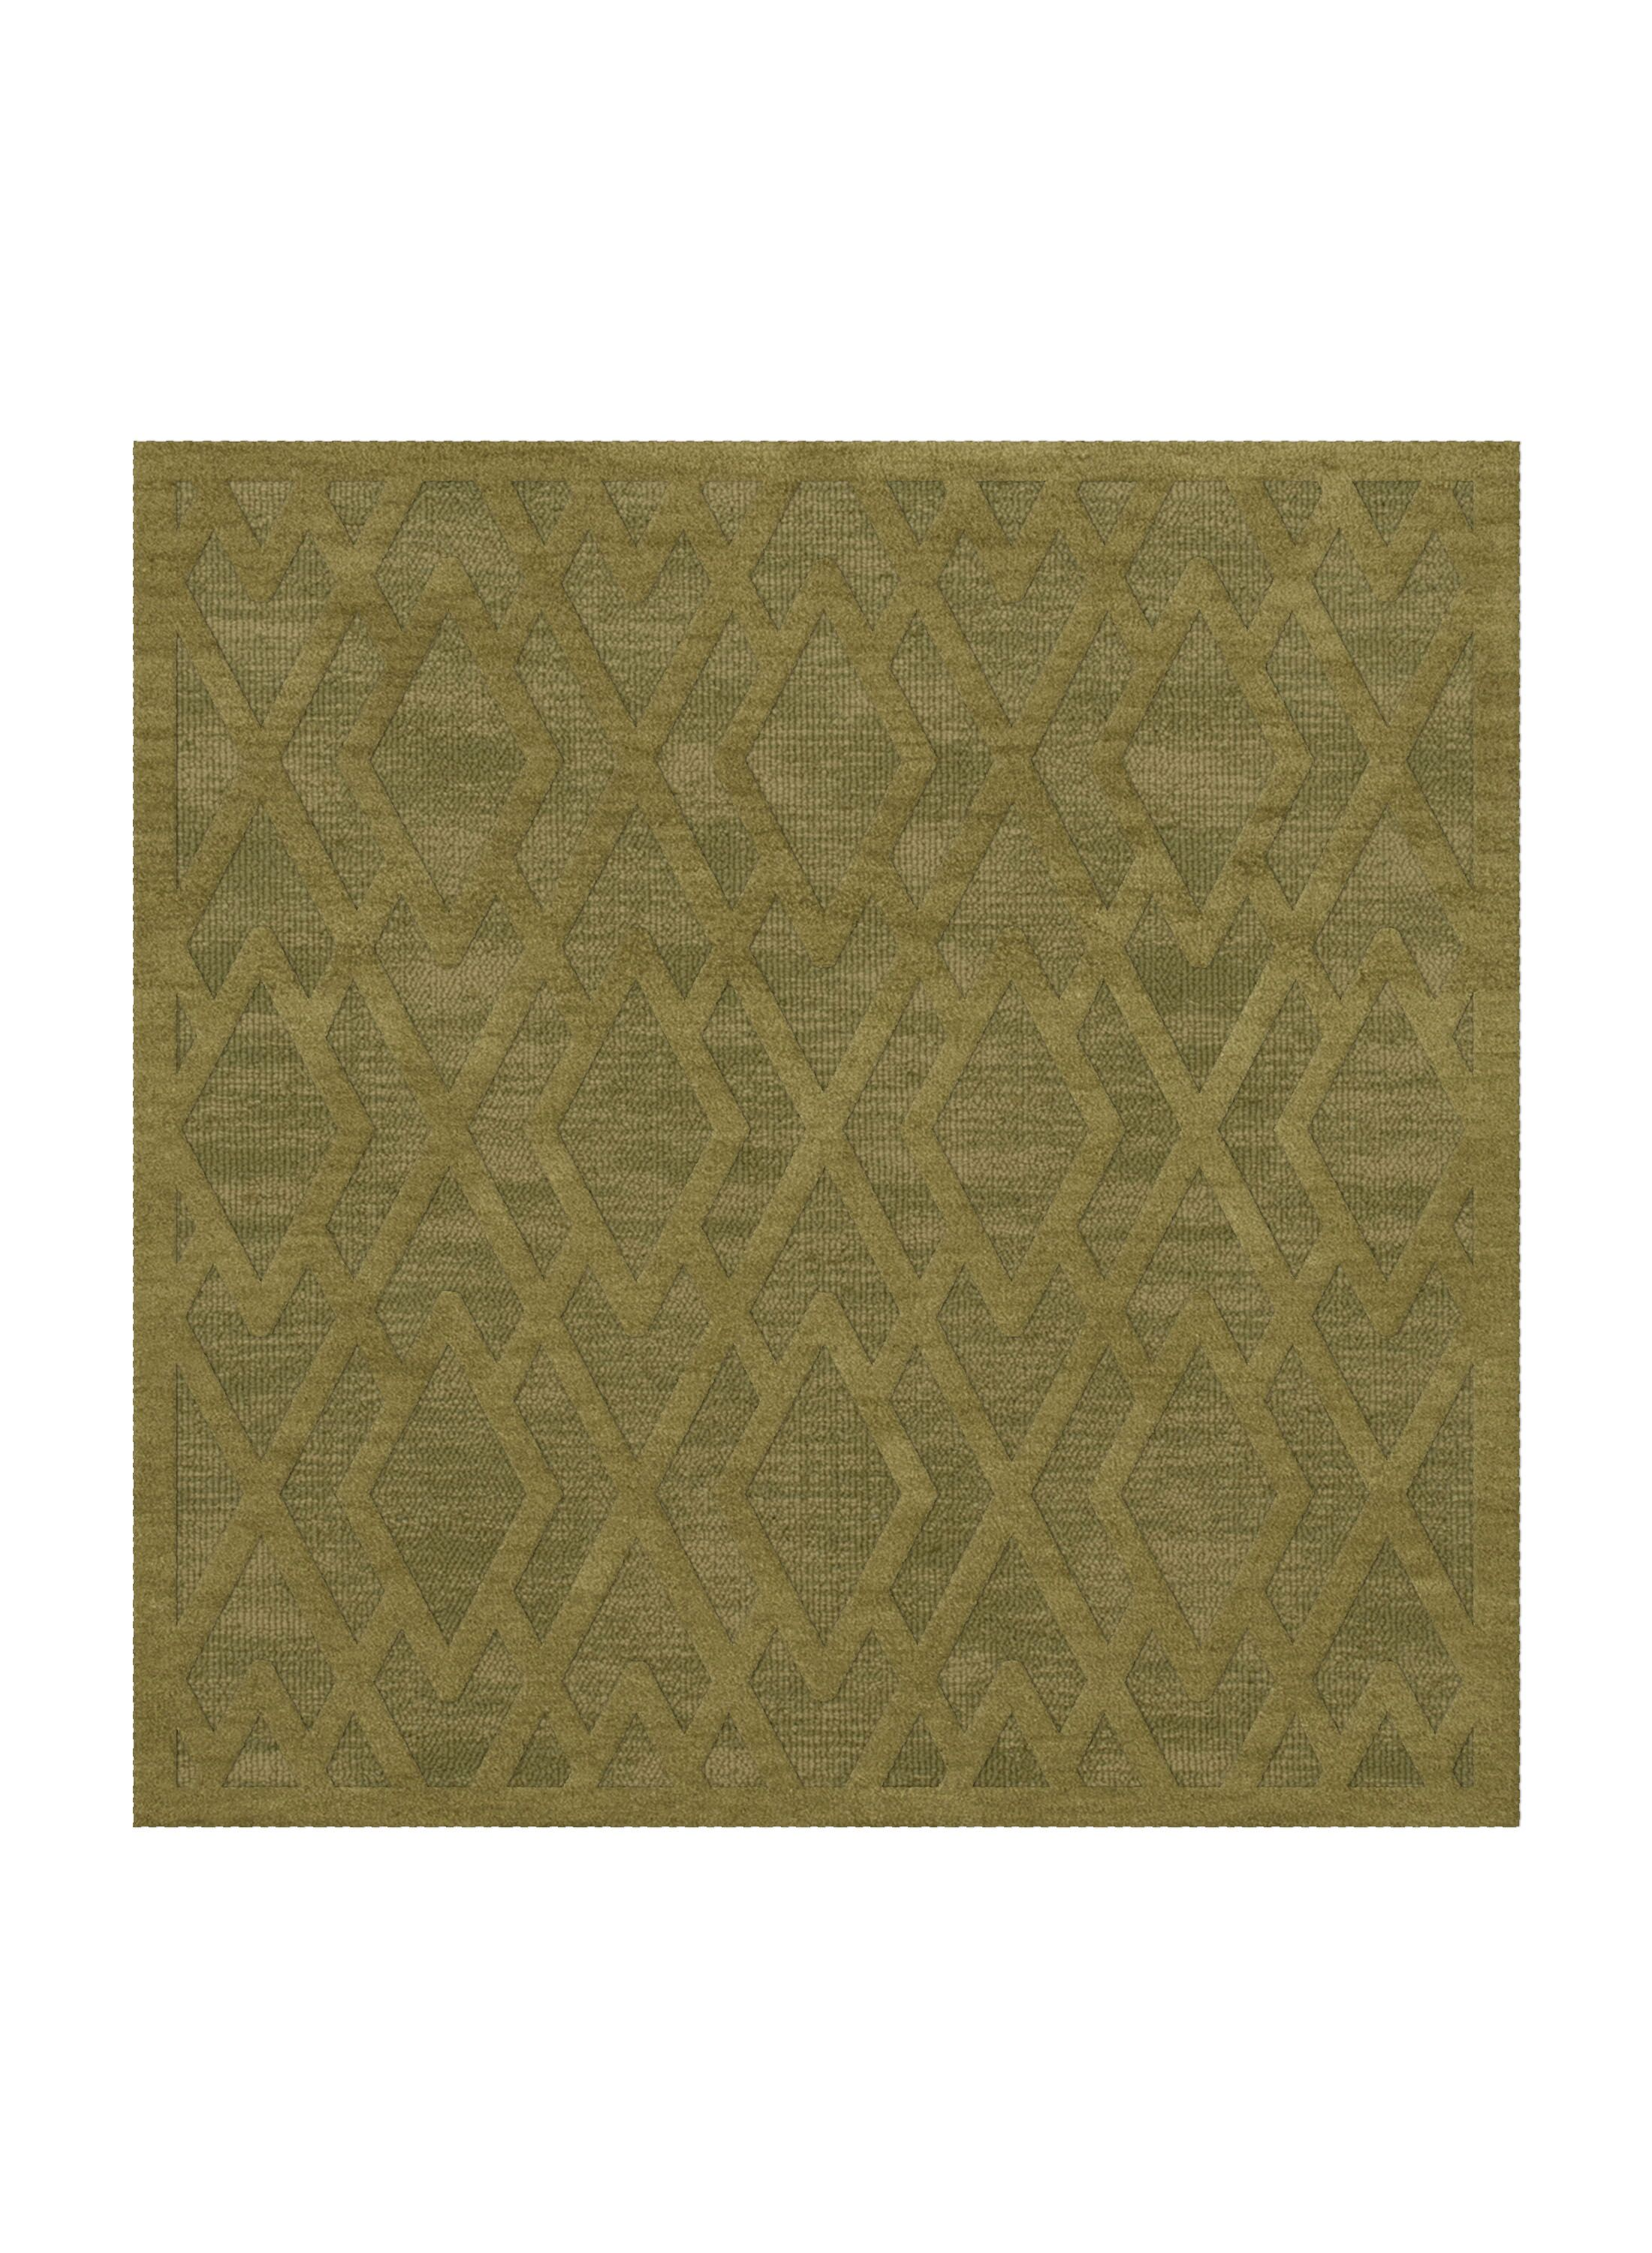 Dover Tufted Wool Pear Area Rug Rug Size: Square 6'